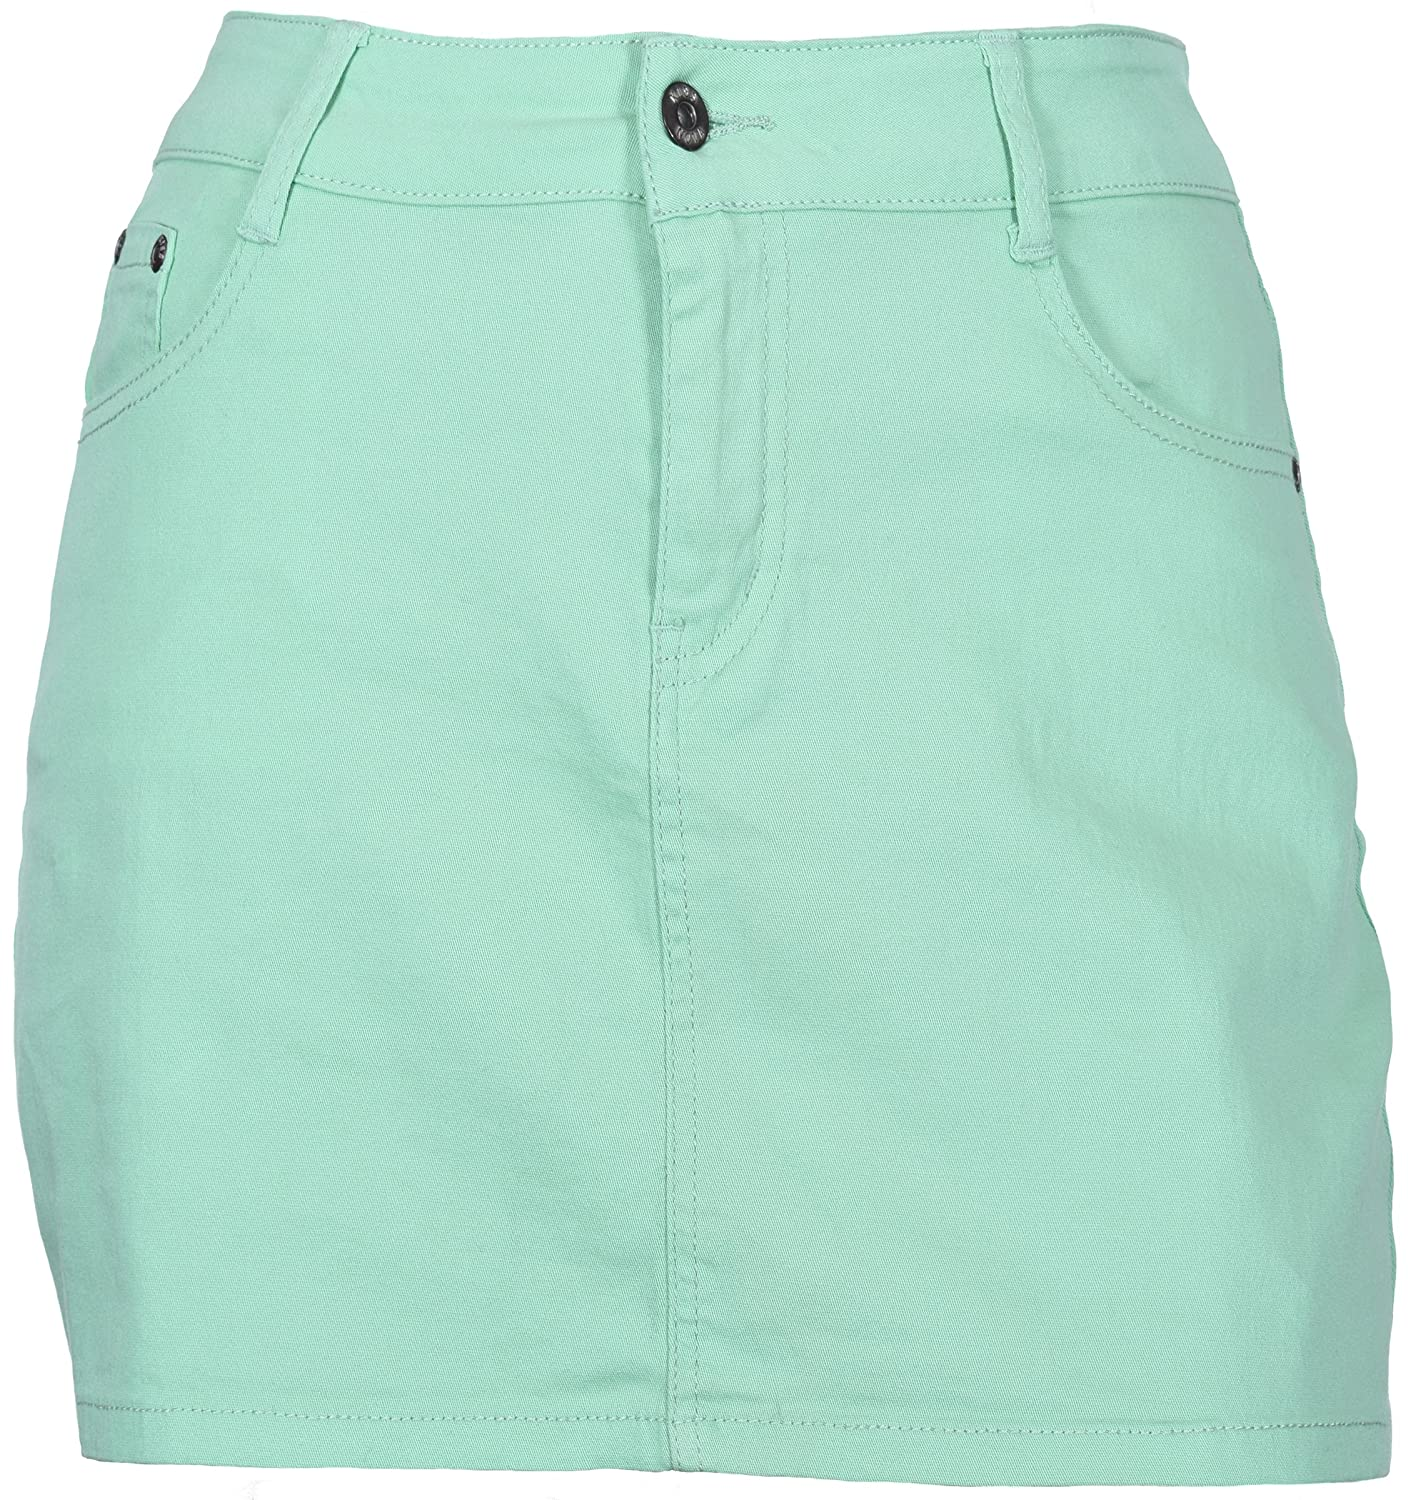 81a497d5d1 Kissnova Women's Soft Stretch Denim Mini Skirt with 5 Pockets Pastel Colors  Sizes 3/4 to 18 at Amazon Women's Clothing store: